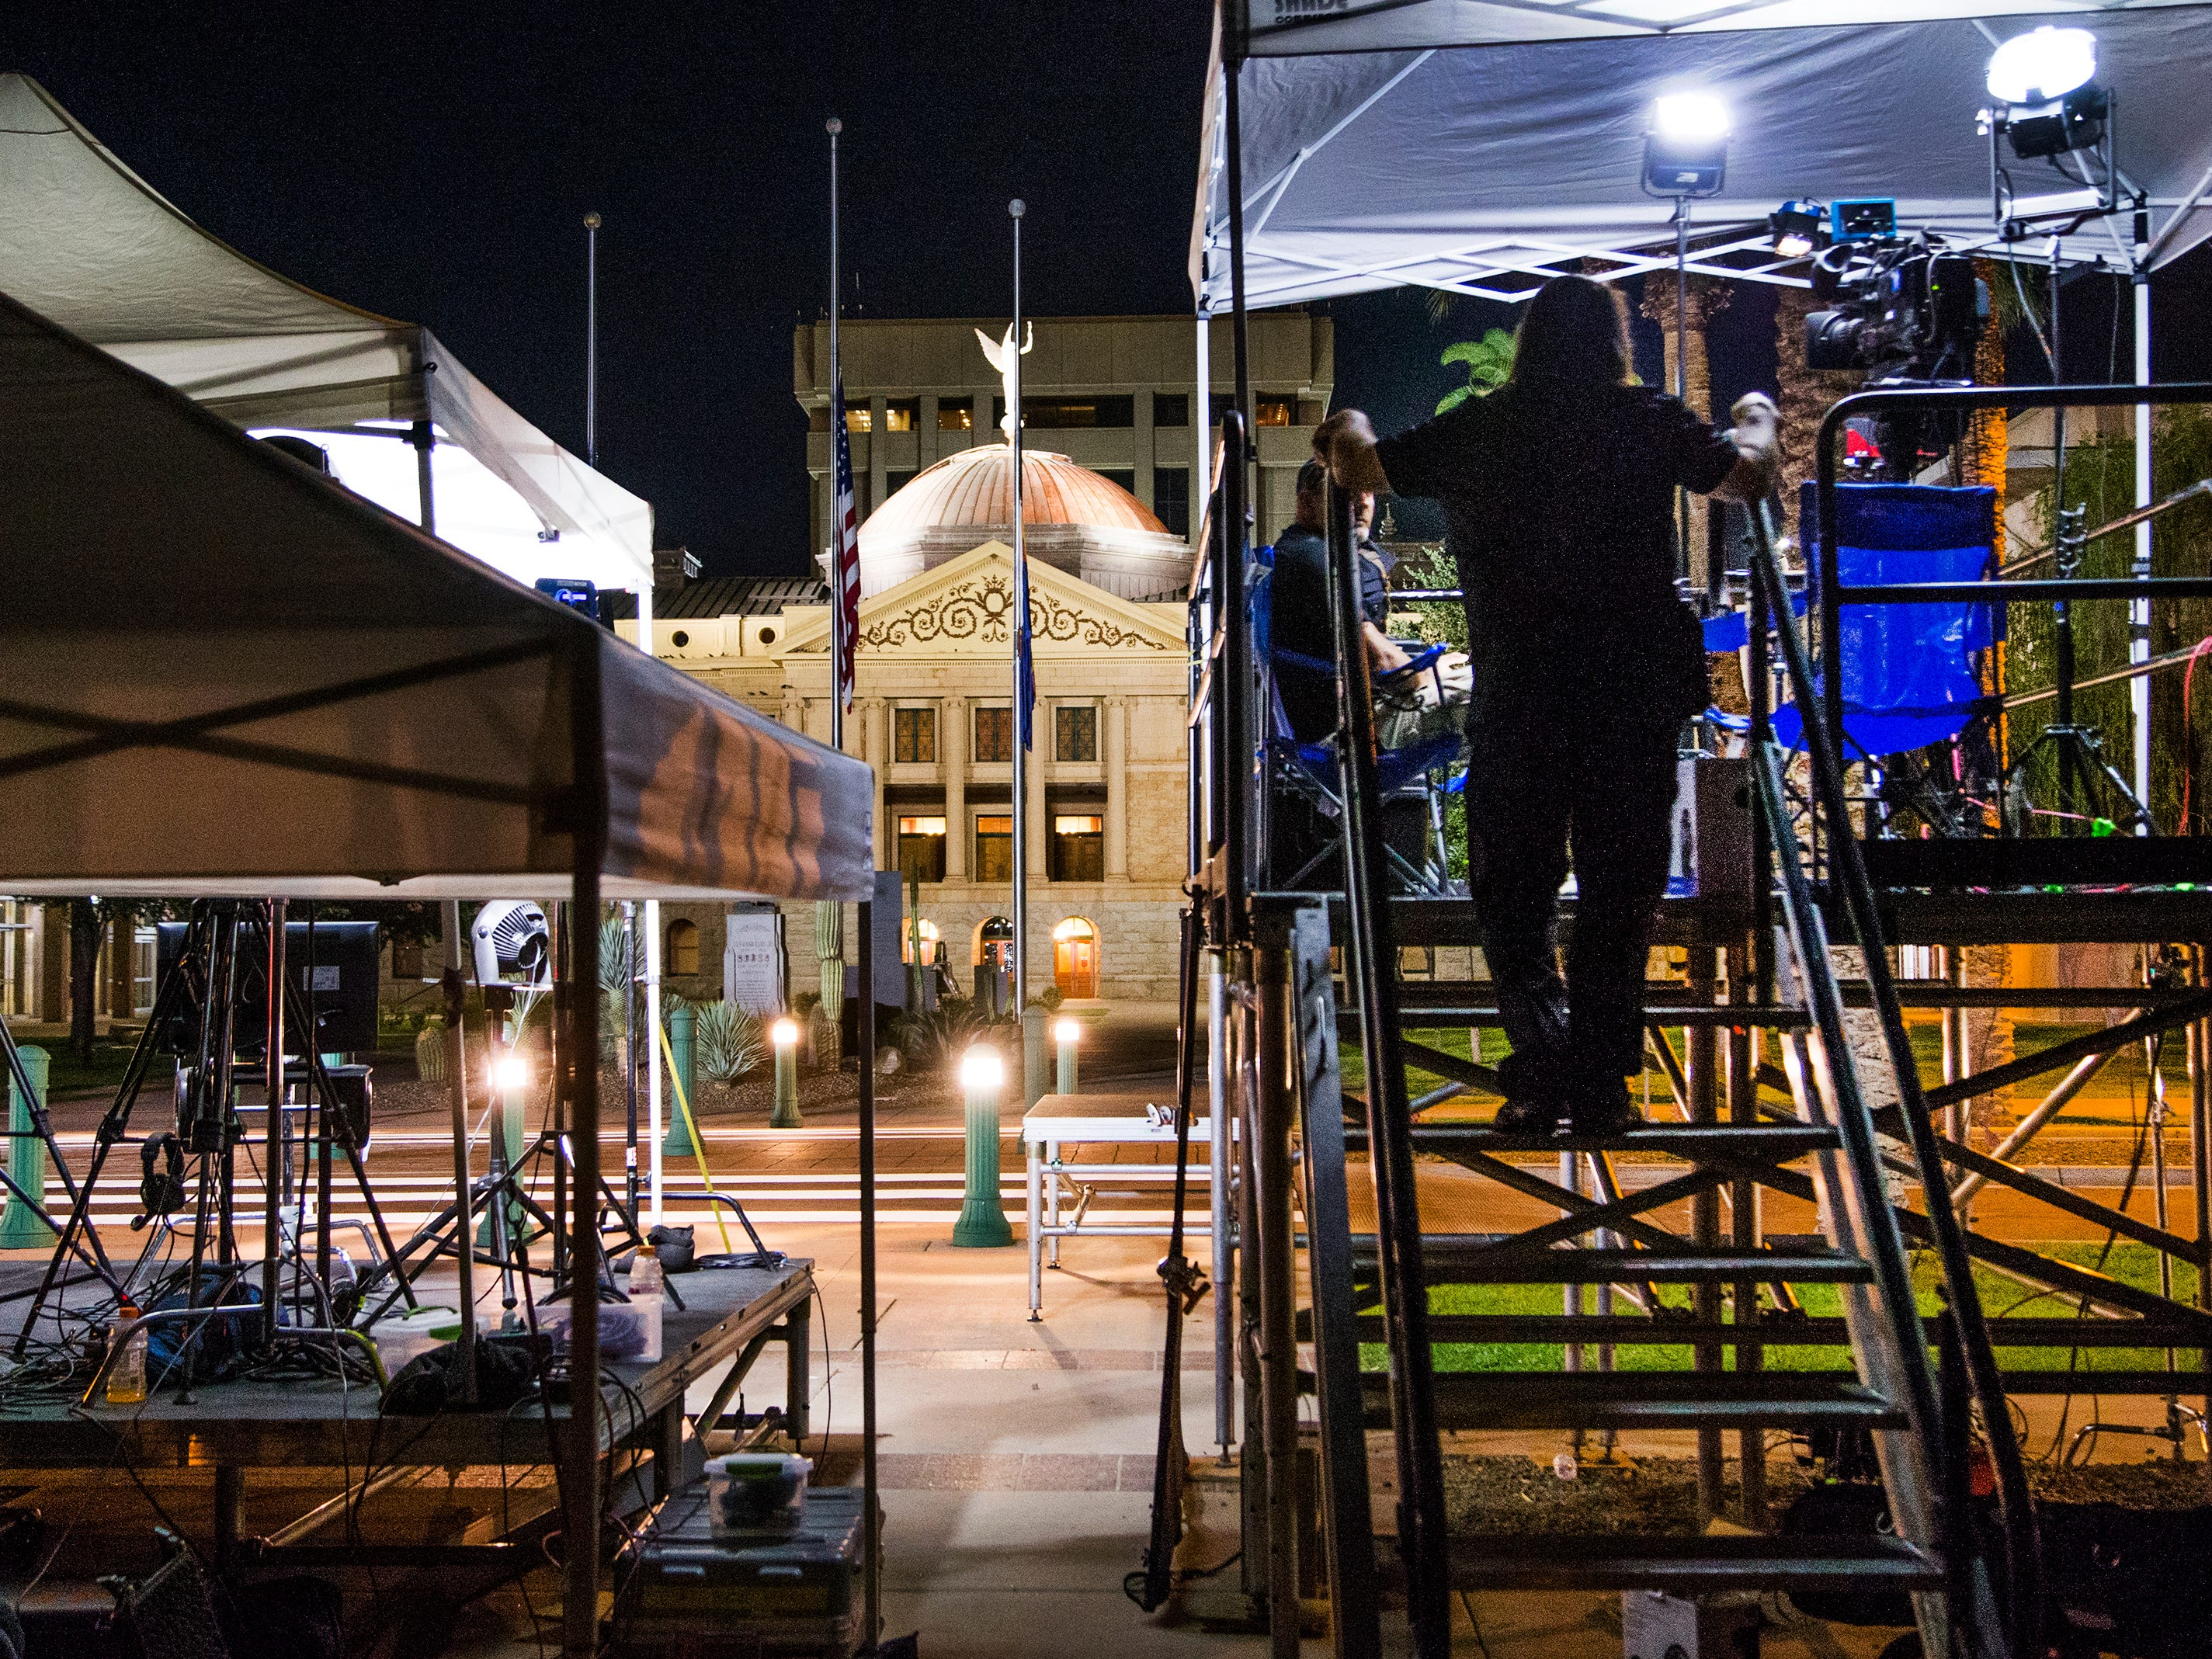 Media from around the world focus on the Capitol in Phoenix at 5 a.m., Aug. 29, 2018. The body of Sen. John McCain will lie in state later in the morning in the rotunda.